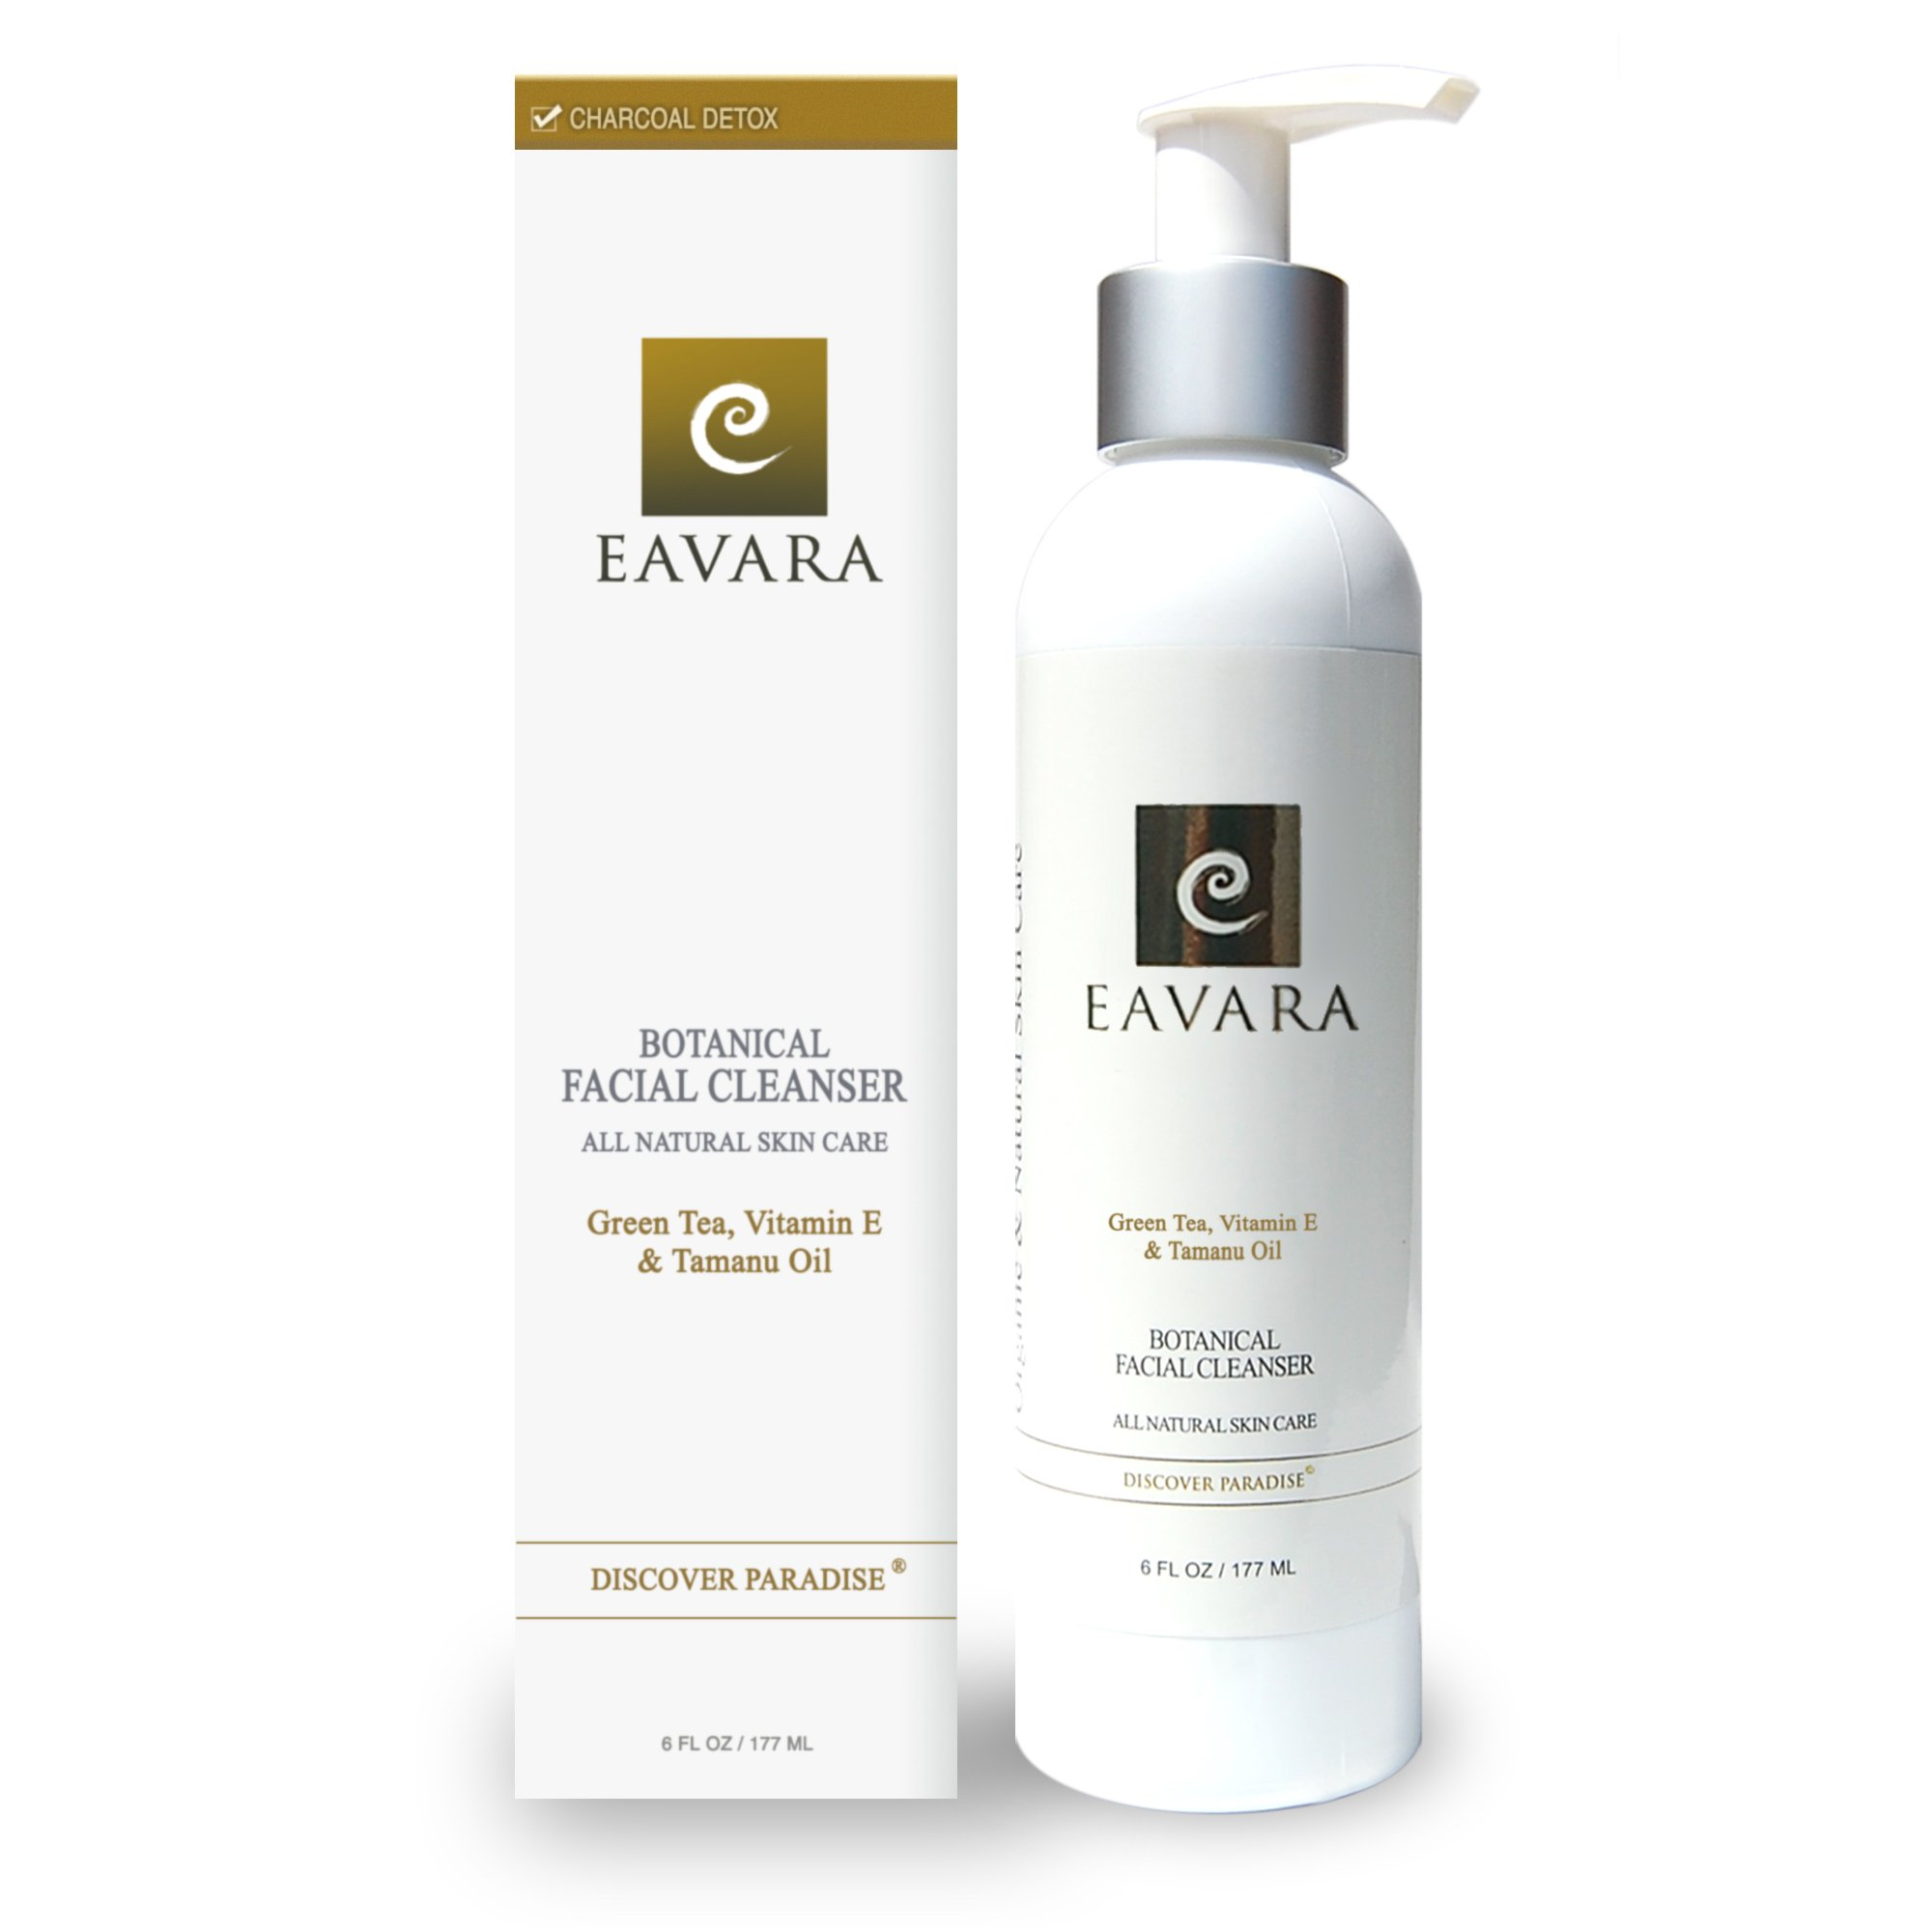 Award Winning Organic Facial Cleanser | Anti Aging | All Natural Exfoliating Pore Face Wash For Women And Men With Sensitive Skin | Moisturizing | Hydrating | Organic Tamanu & Coconut Oil by Eavara